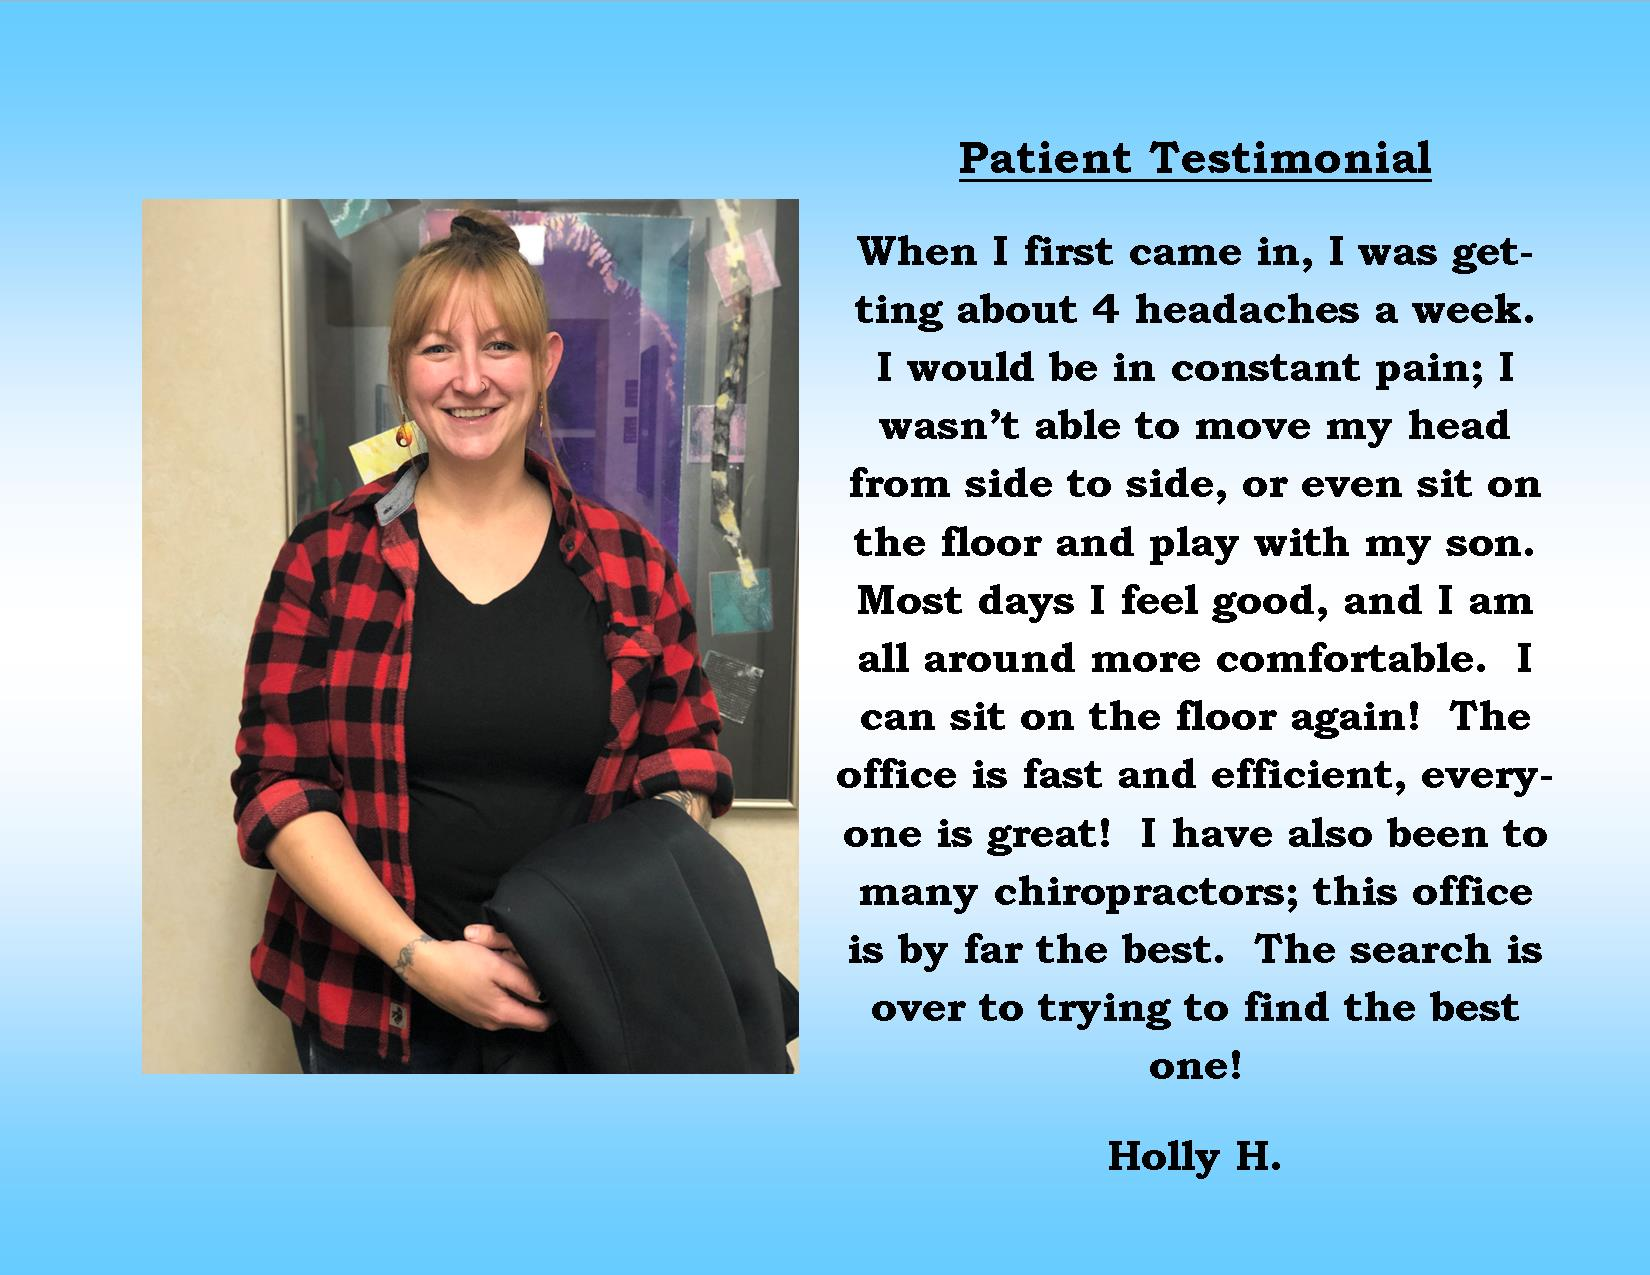 Holly H patient testimonial